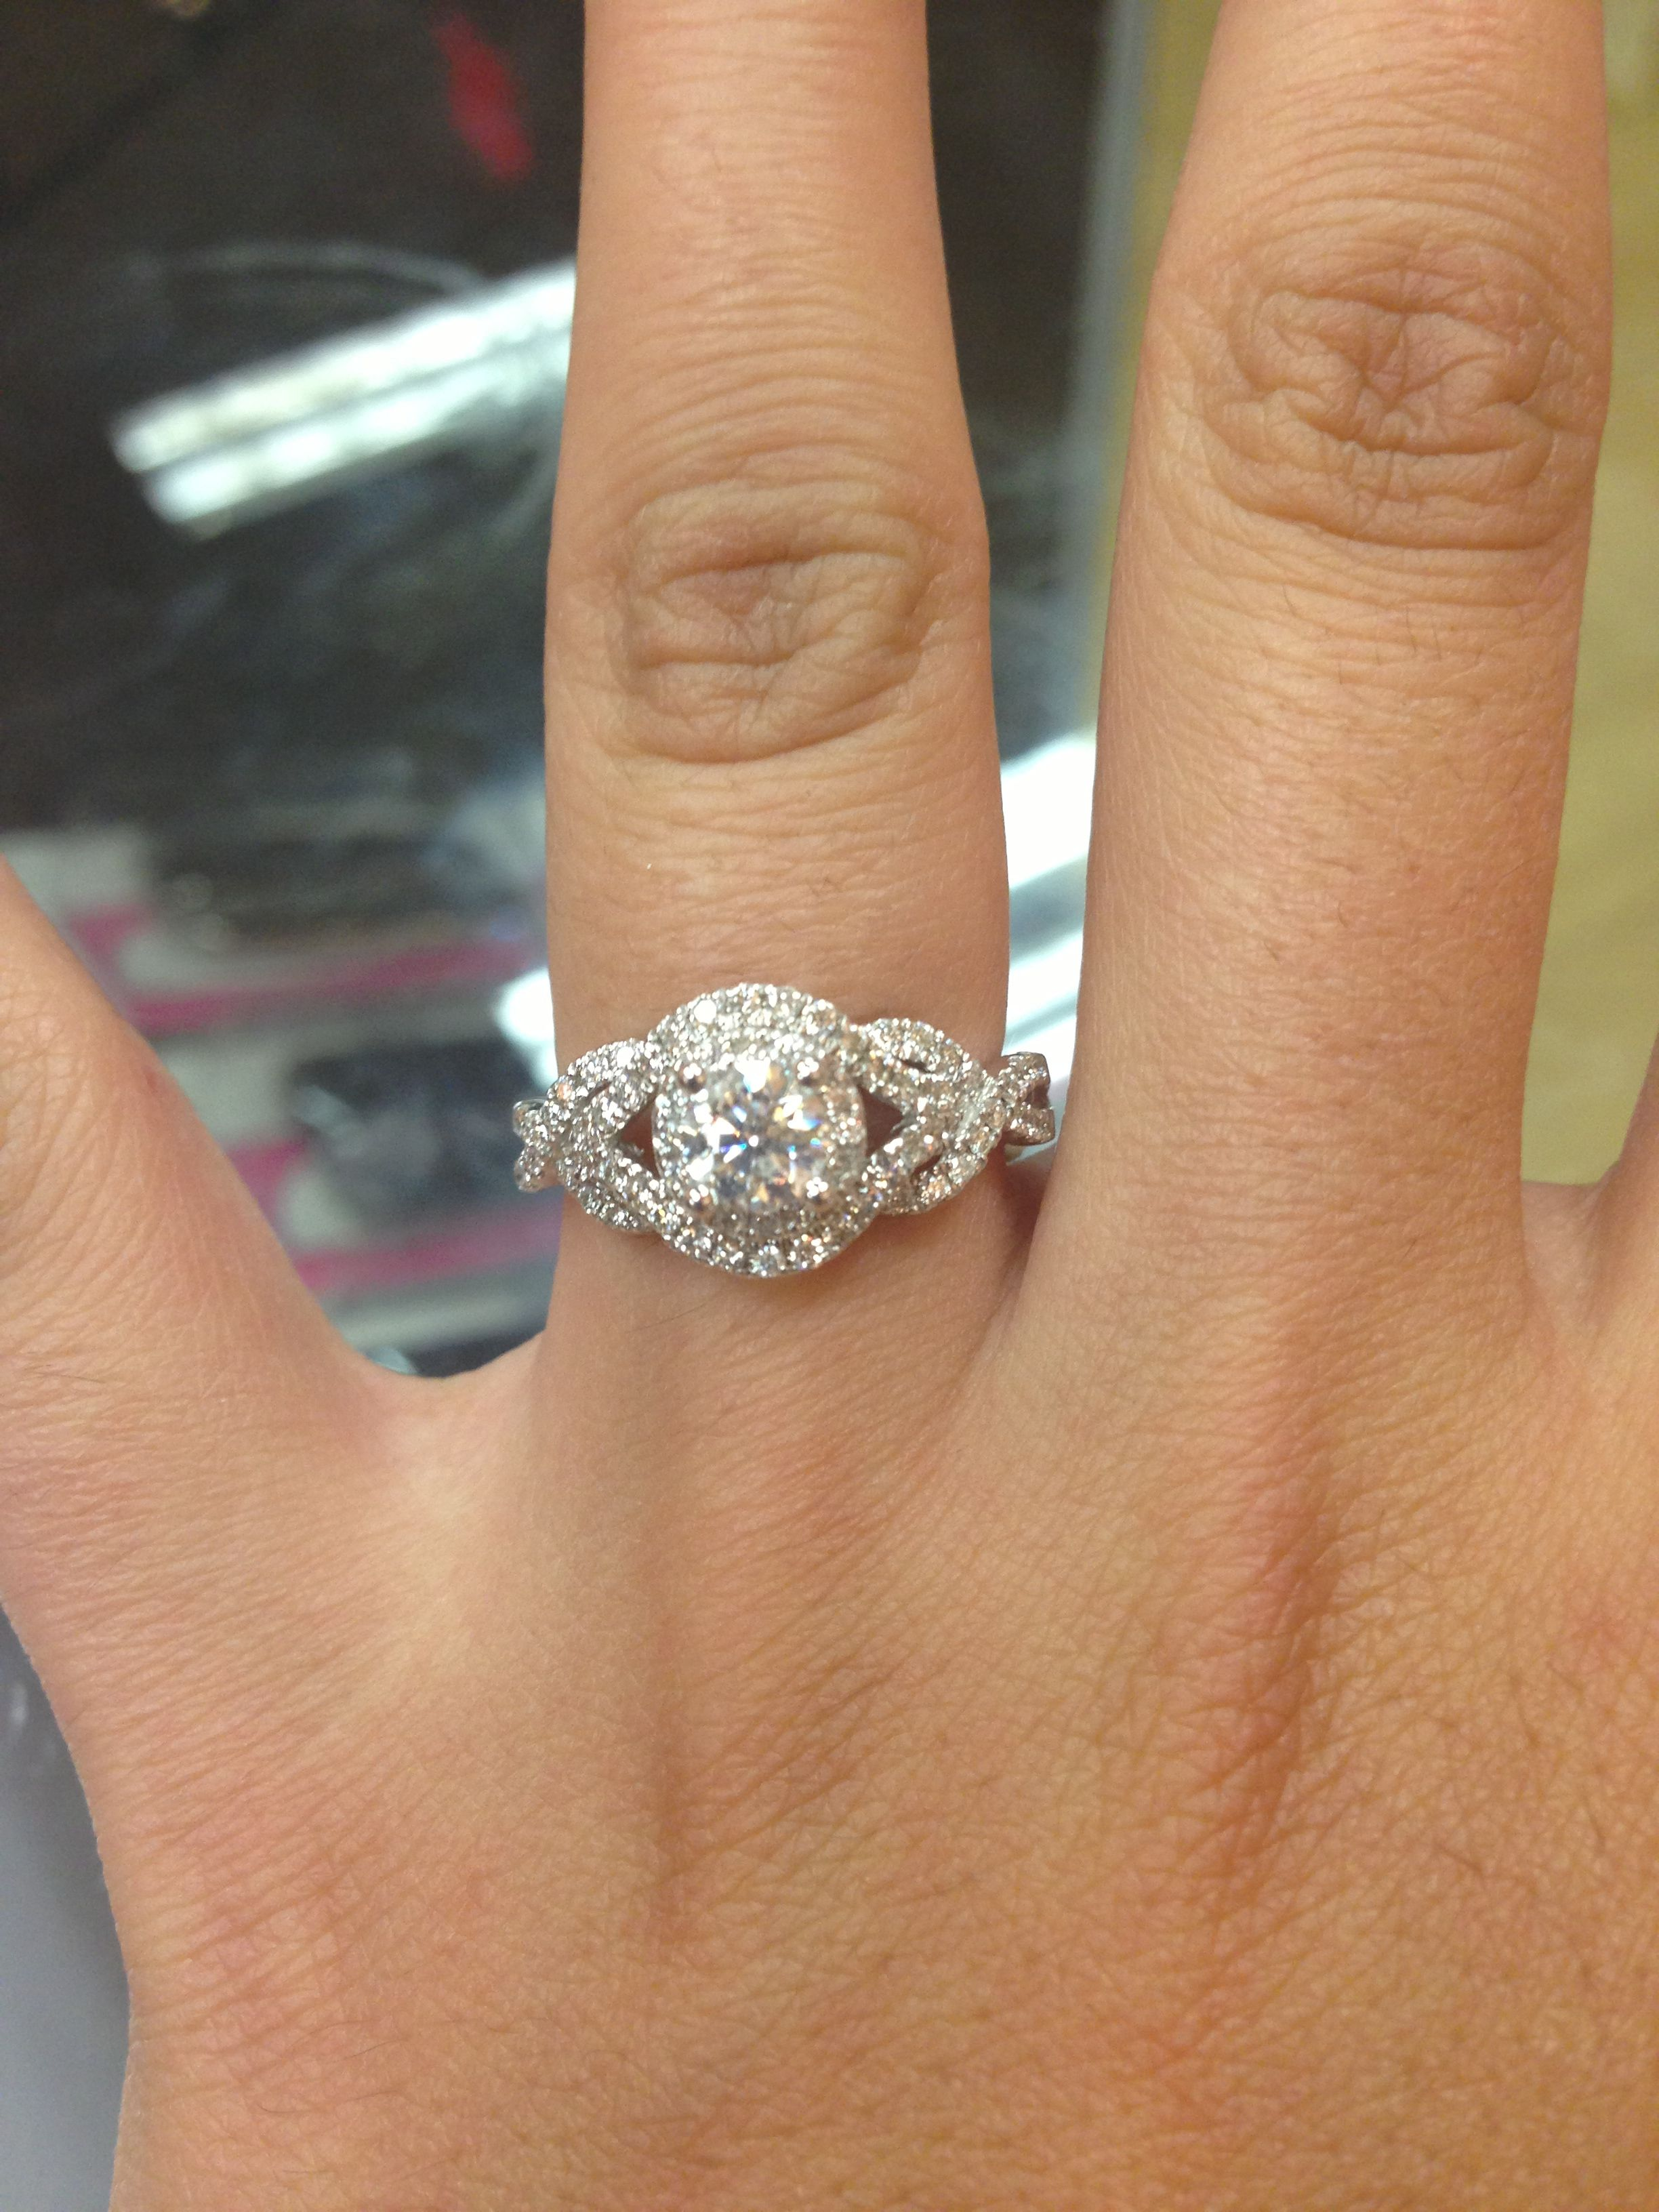 Engagement ring from Kay Jewelers I would say yes in a heartbeat